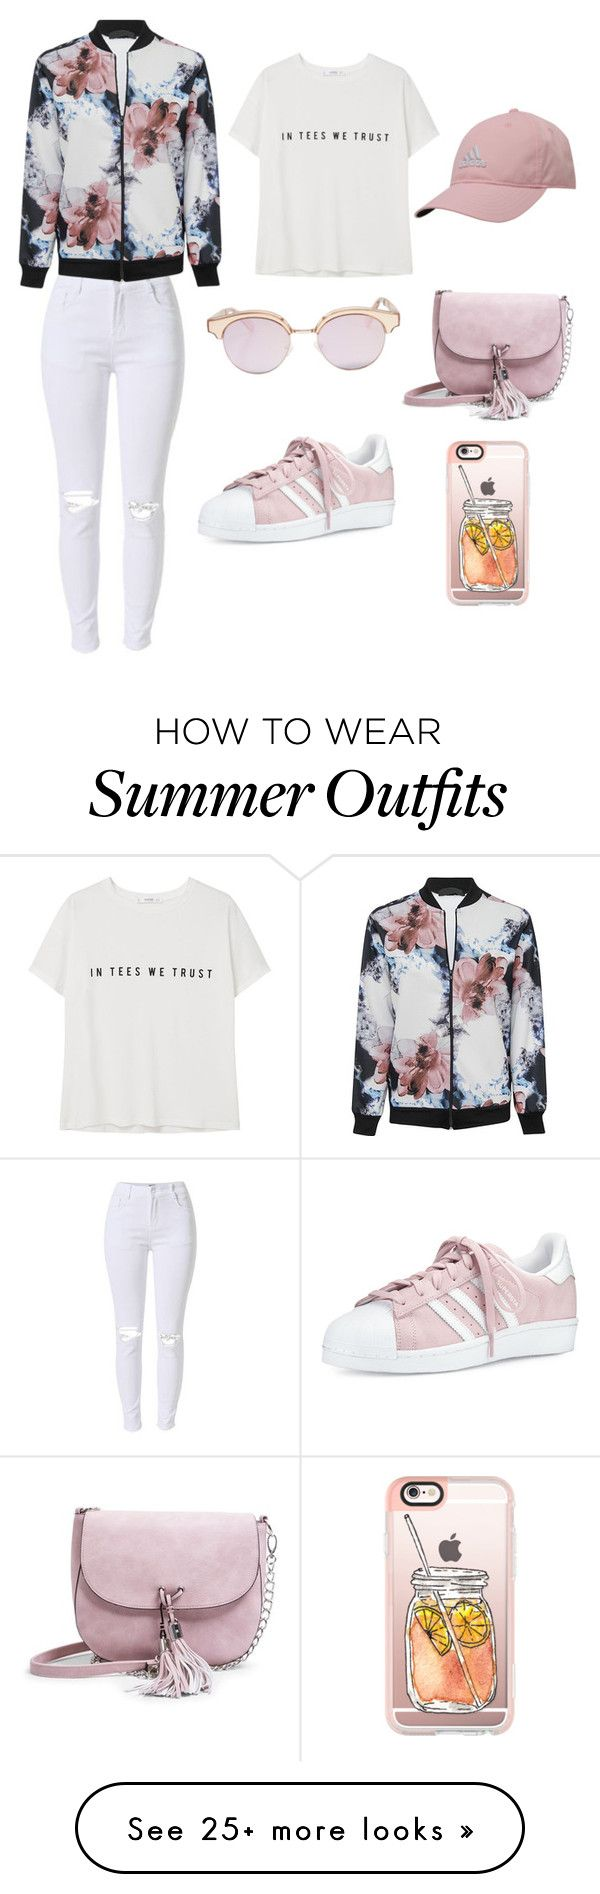 """girly sport outfit"" by nadabakhtir on Polyvore featuring MANGO, Madden Girl, adidas, Casetify and Le Specs"